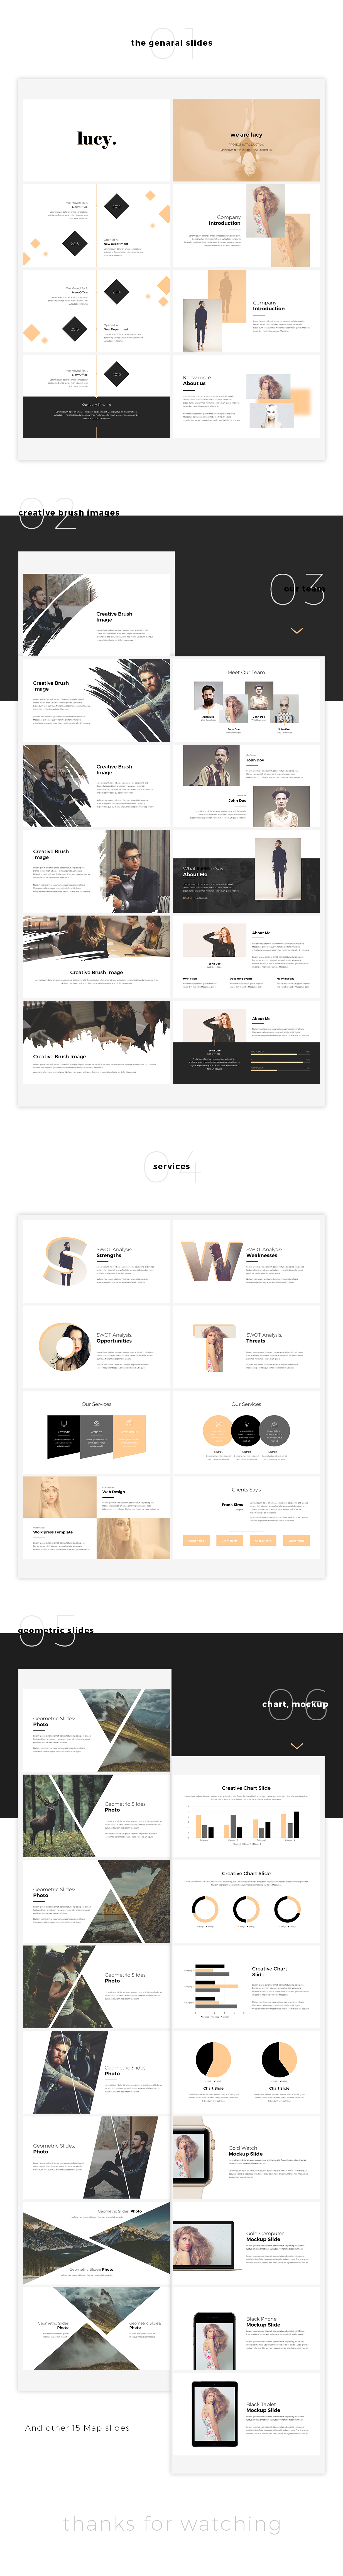 Lucy - Creative Powerpoint Template